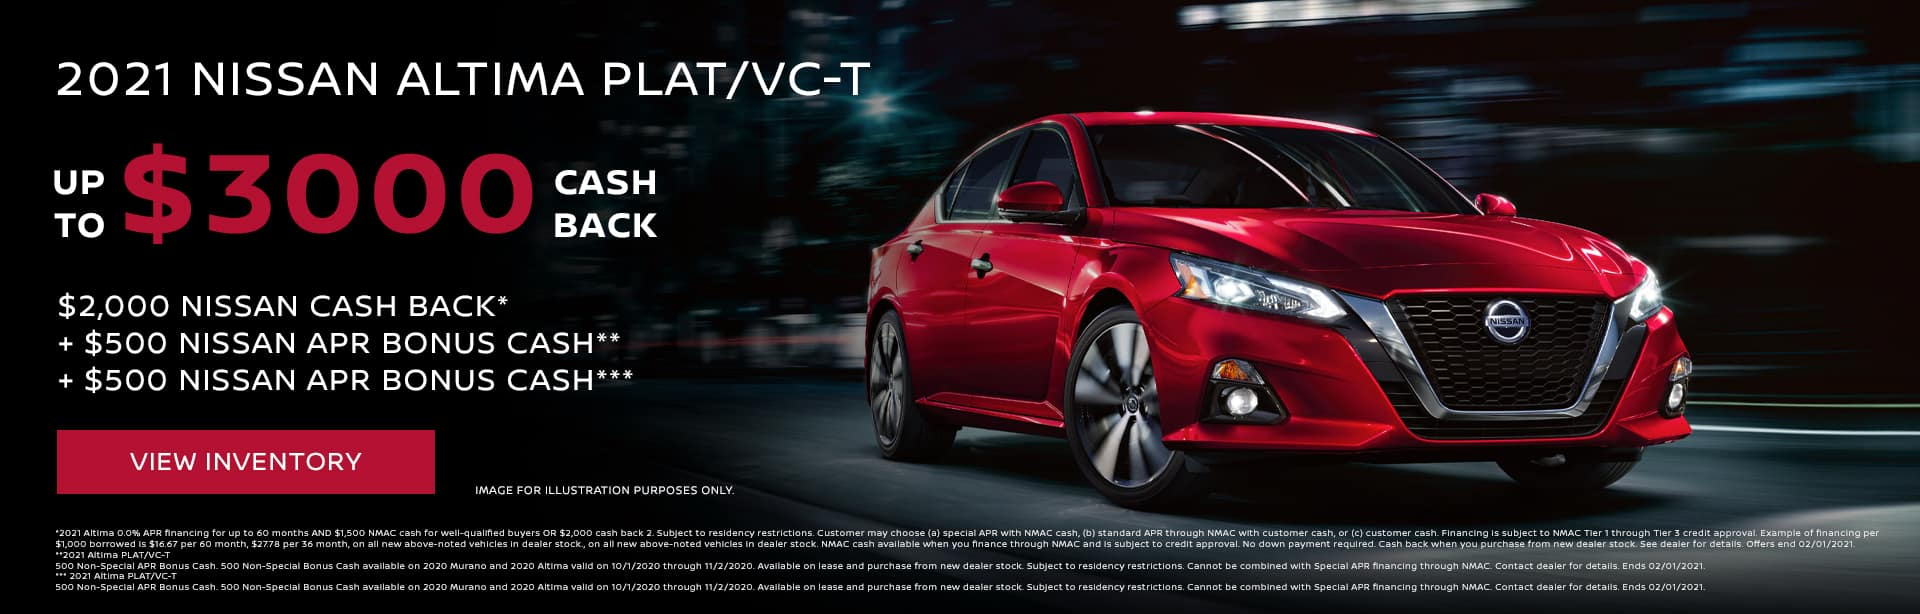 2021 Nissan Altima PLAT/VC-T Up to $3,000 Cash Back ($2,000 Nissan Cash Back* + $500 Nissan APR Bonus Cash** + $500 Nissan APR Bonus Cash***)